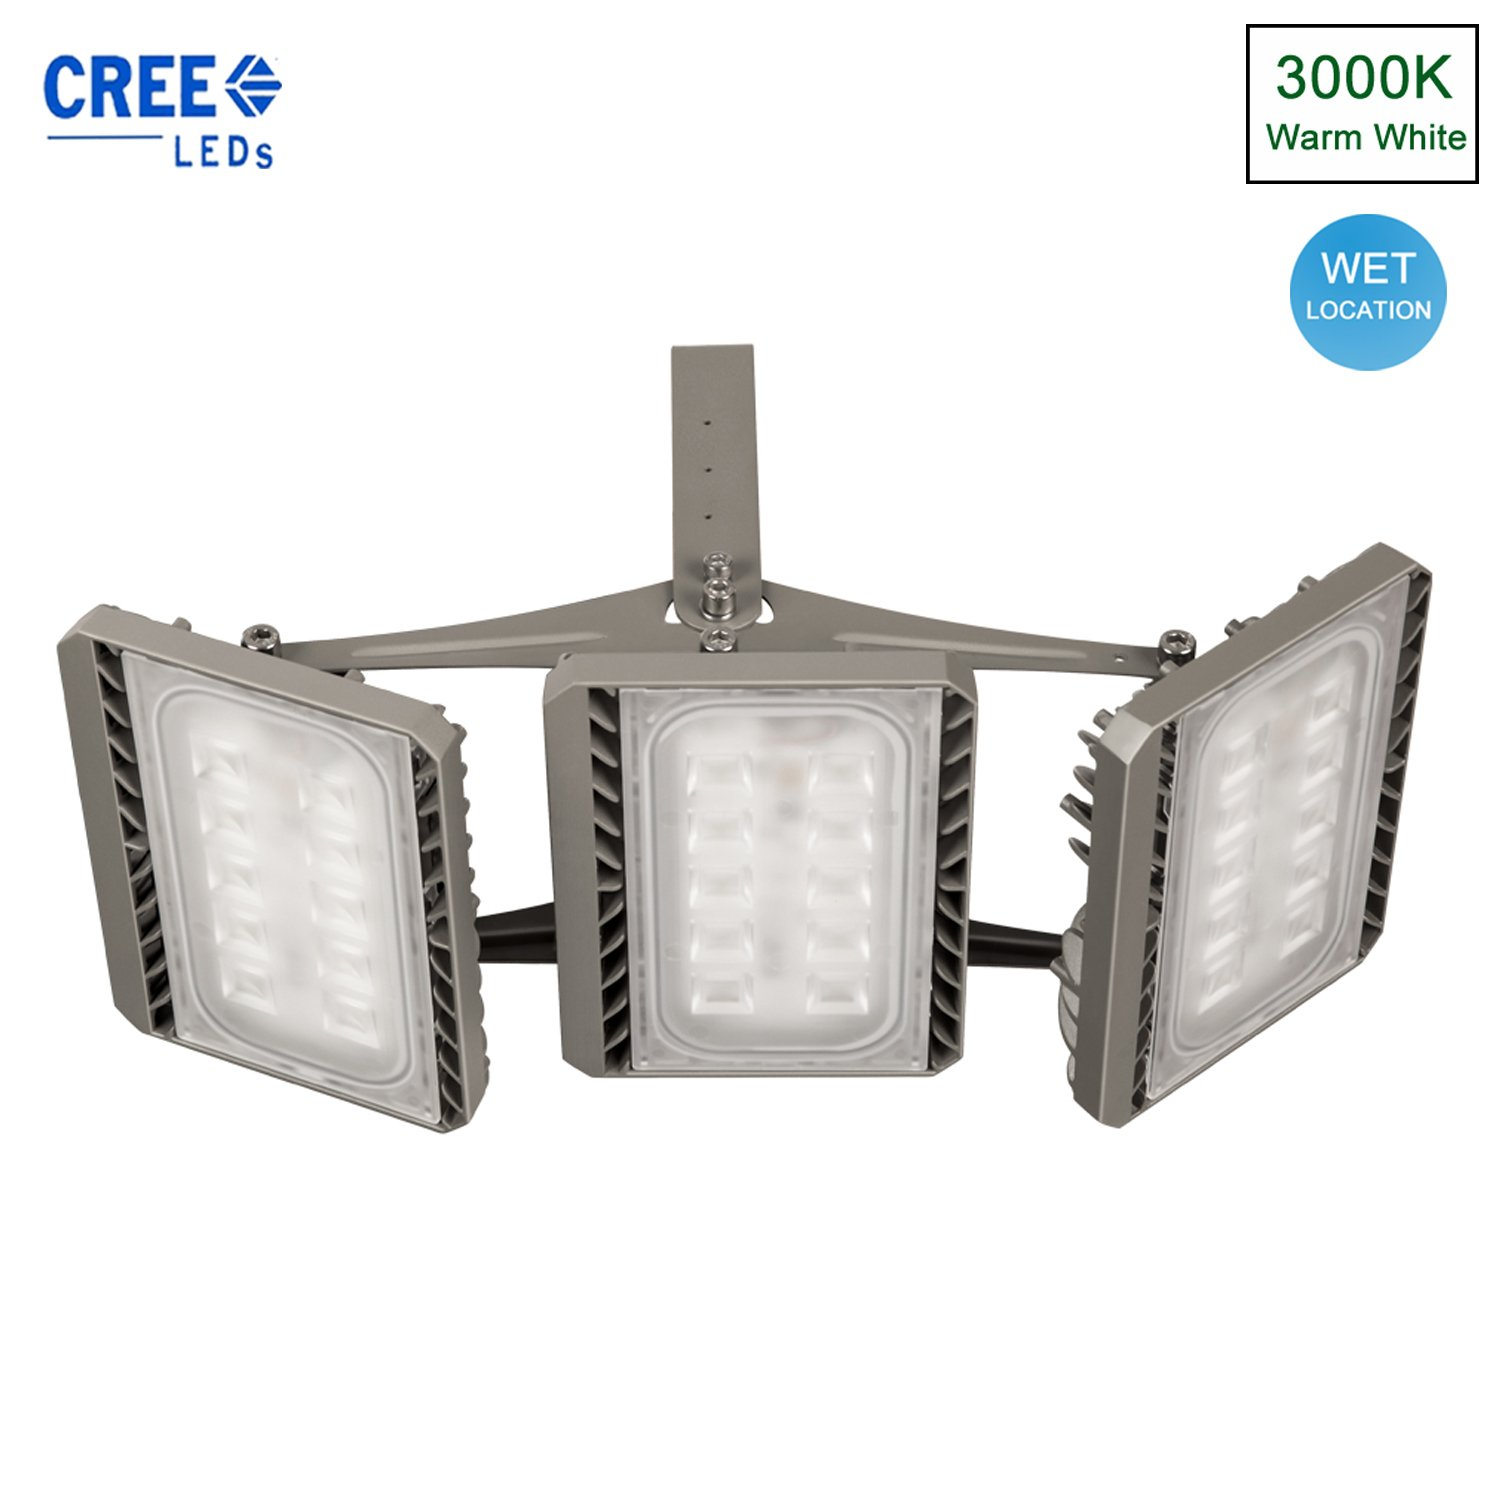 Stasun LED Flood Light Outdoor, 150W Super Bright LED Security Lights, Cree LED Source, 13500lm, 450W Equivalent, 3000K Warm White, Adjustable Heads, Wide Angle Waterproof Floodlight